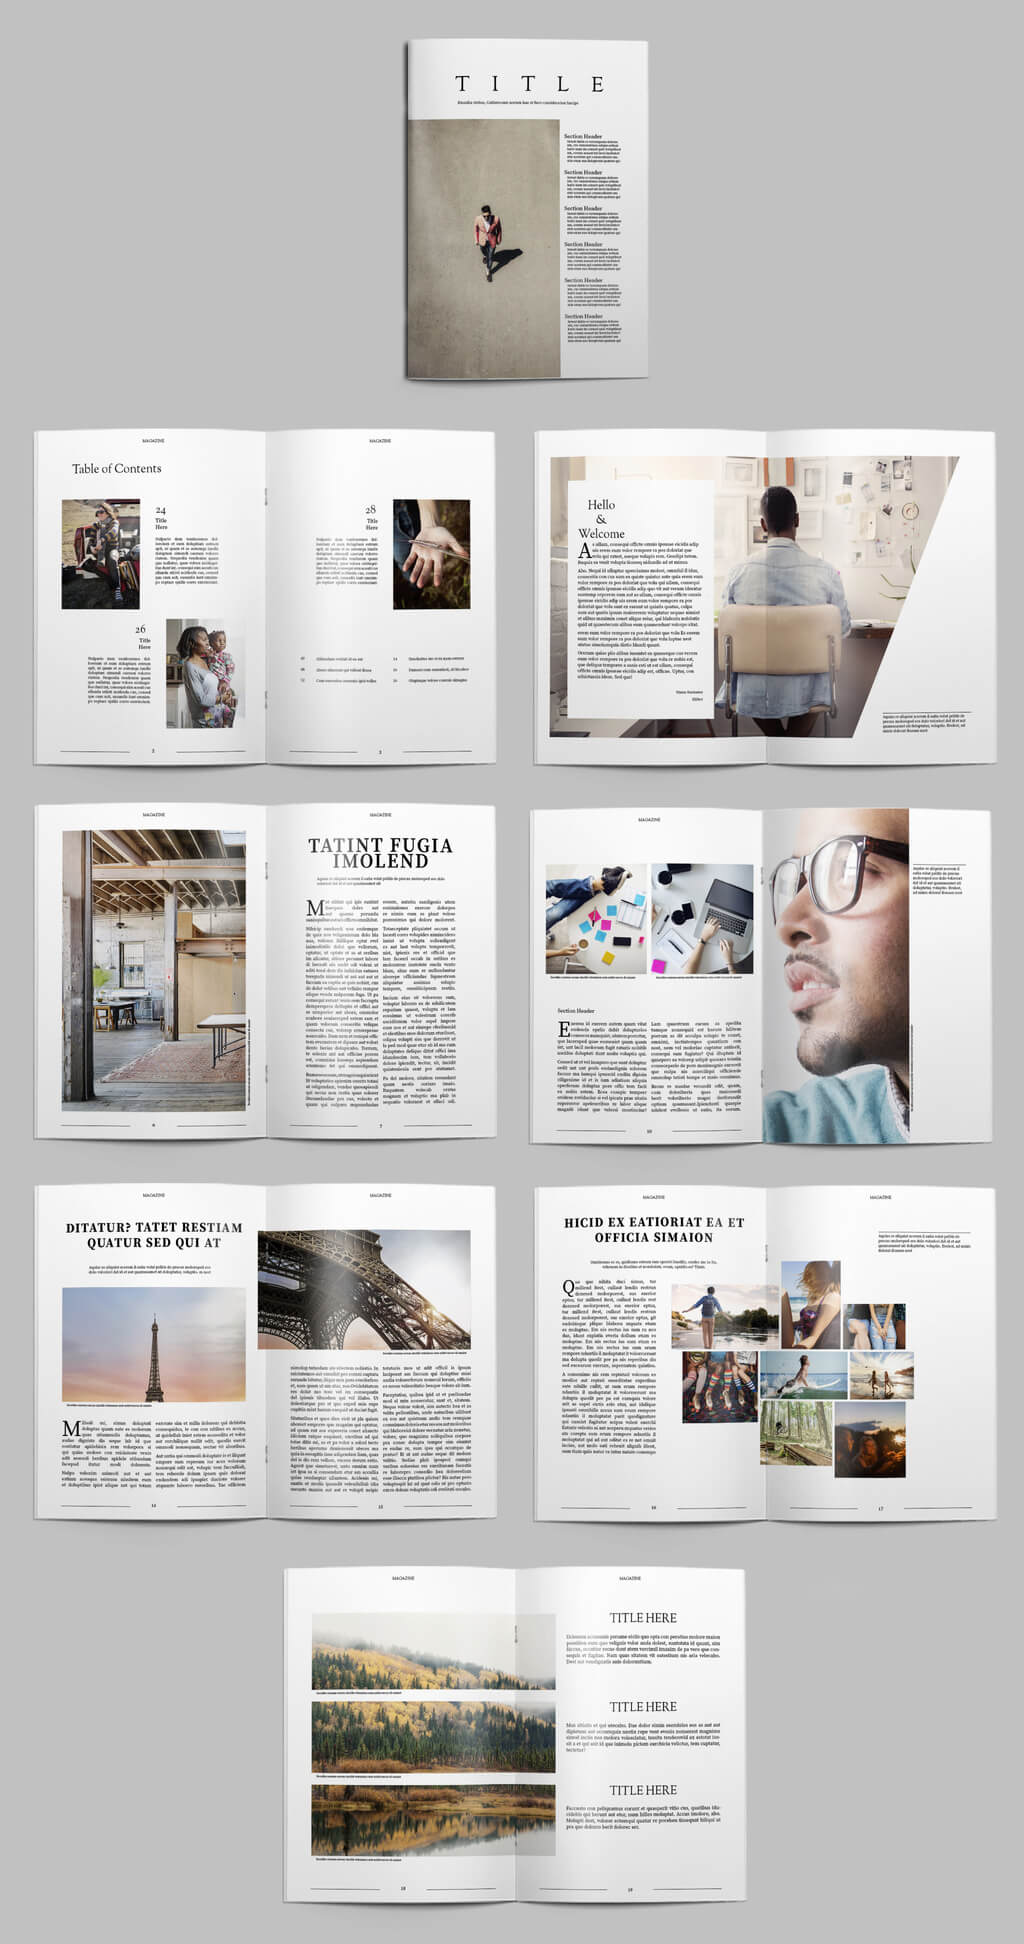 004 Image6 Free Magazine Layout Templates For Microsoft Word Intended For Magazine Template For Microsoft Word